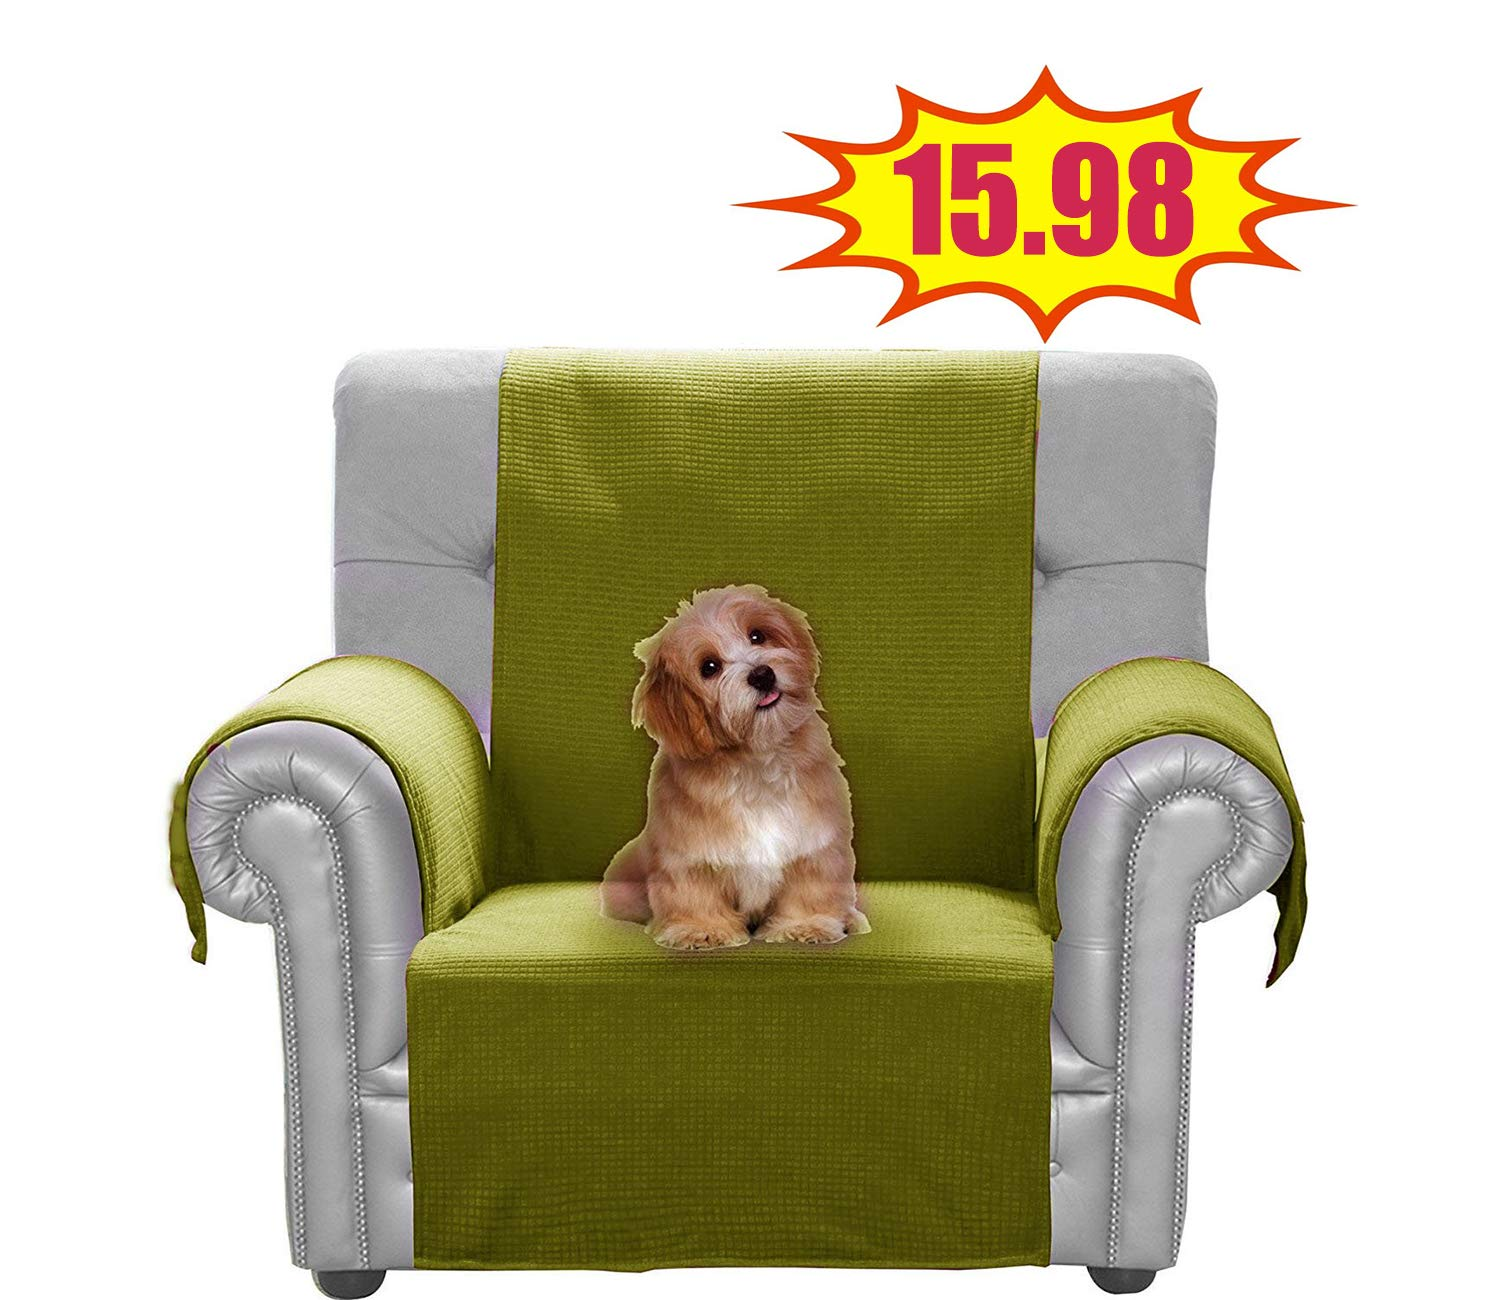 Phenomenal Jiater Improved Non Slip Pet Dog Sofa Chair Slipcovers Living Room Couch Covers Furniture Protectors Fruit Green Chair Bralicious Painted Fabric Chair Ideas Braliciousco